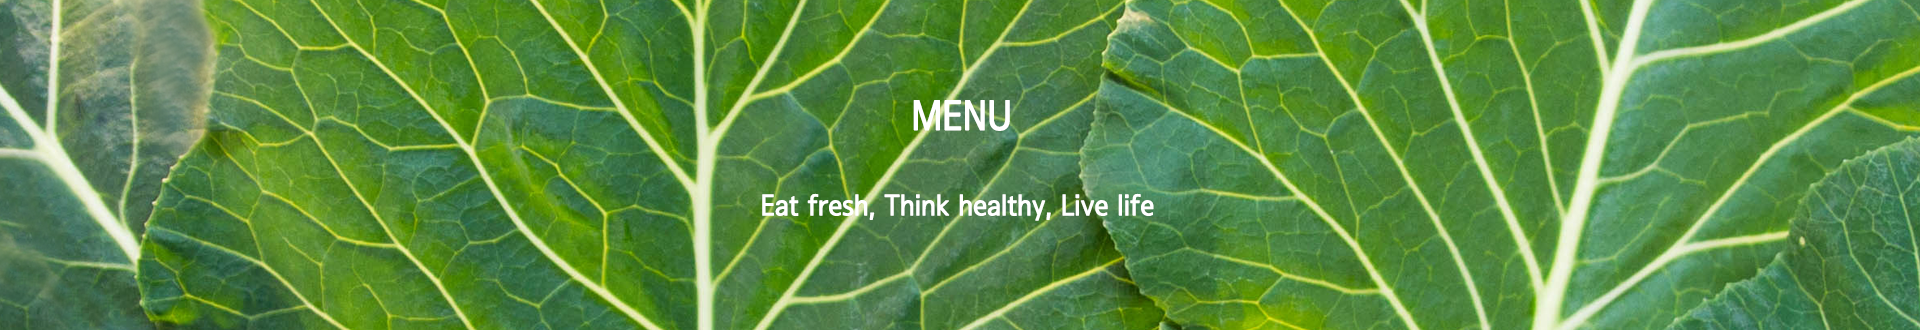 MENU Eat fresh, Think heallthy, Live life